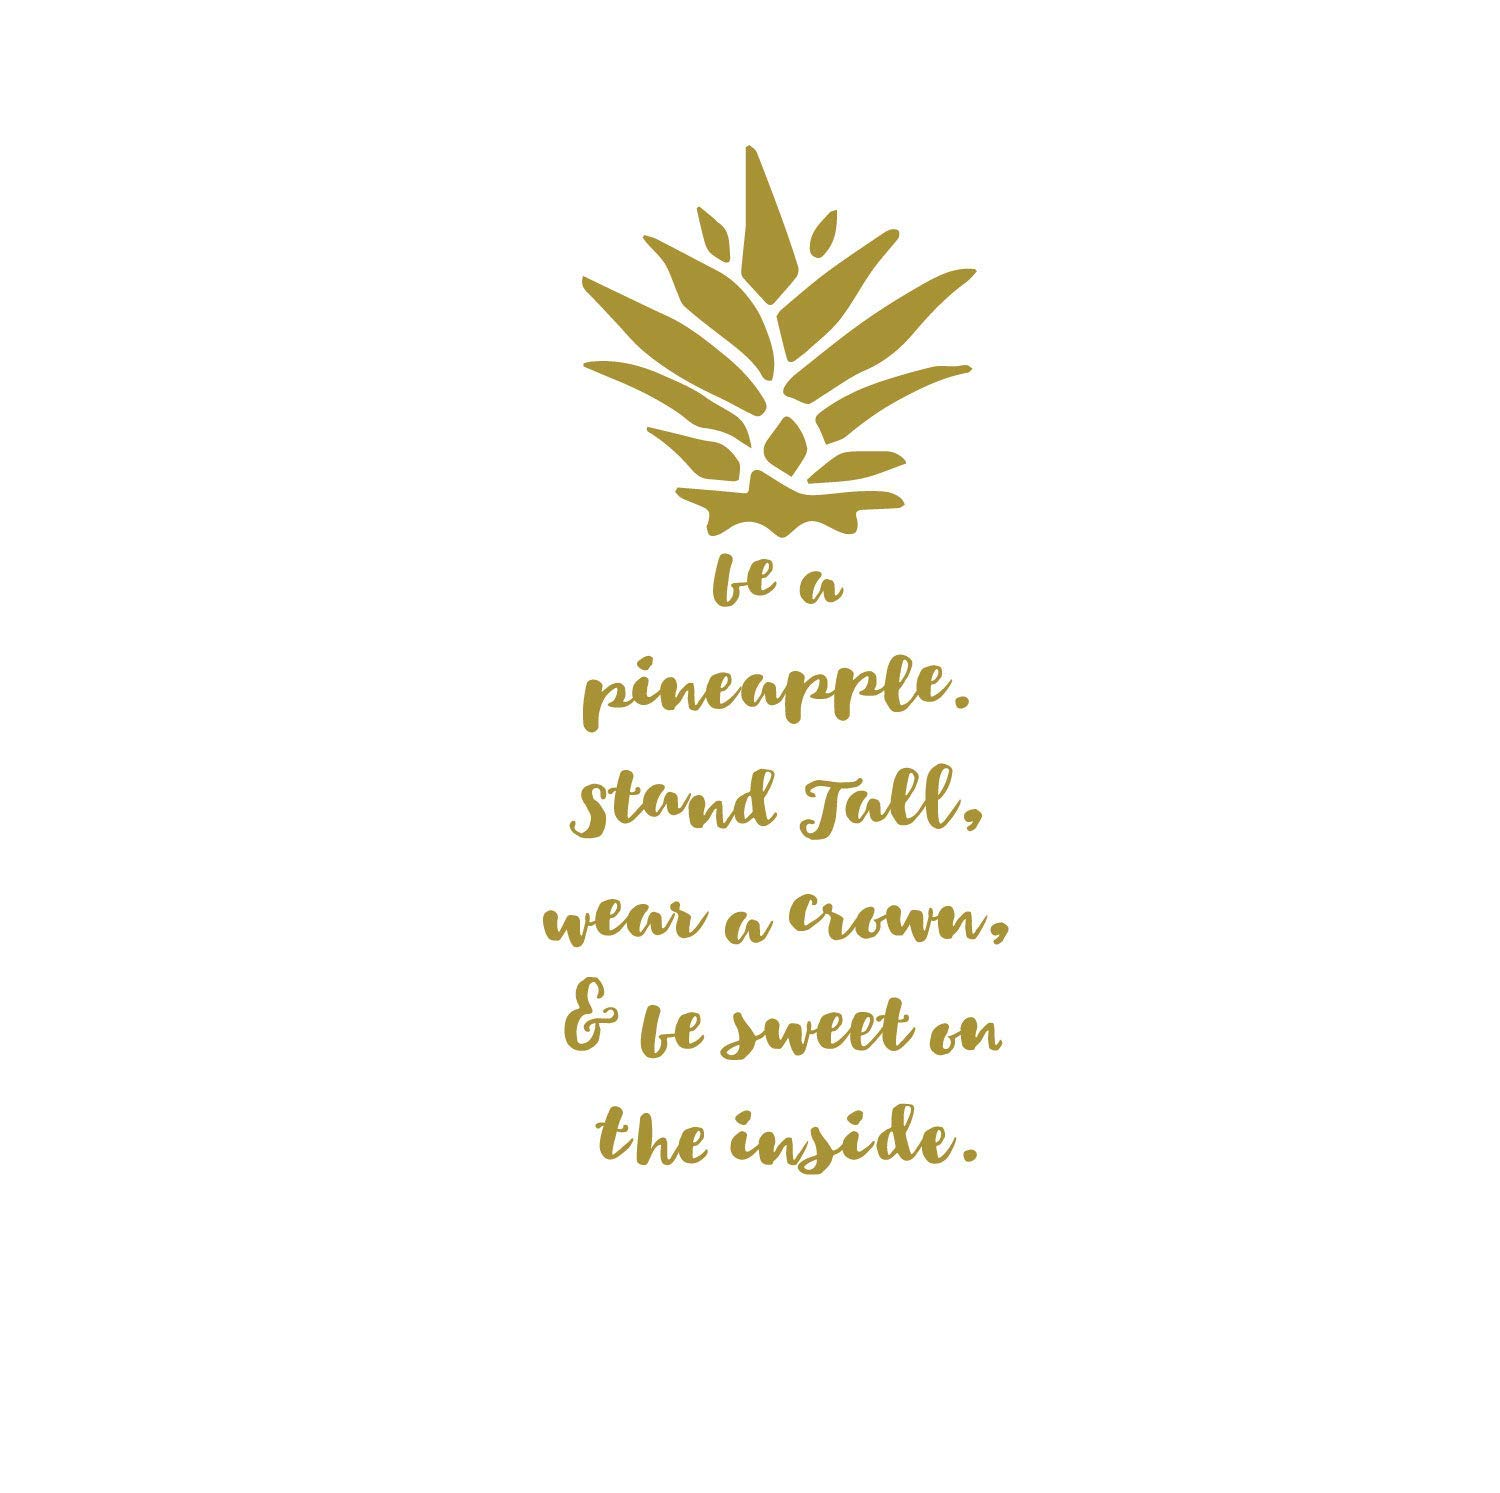 Be A Pineapple Quote Lettering Wall Decal   Removable Vinyl Sticker   Motivational Life Quotation Decoration   Living Room, Kitchen Bedroom Decor   Metallic Gold, Silver, Black, Yellow, 25 Colors